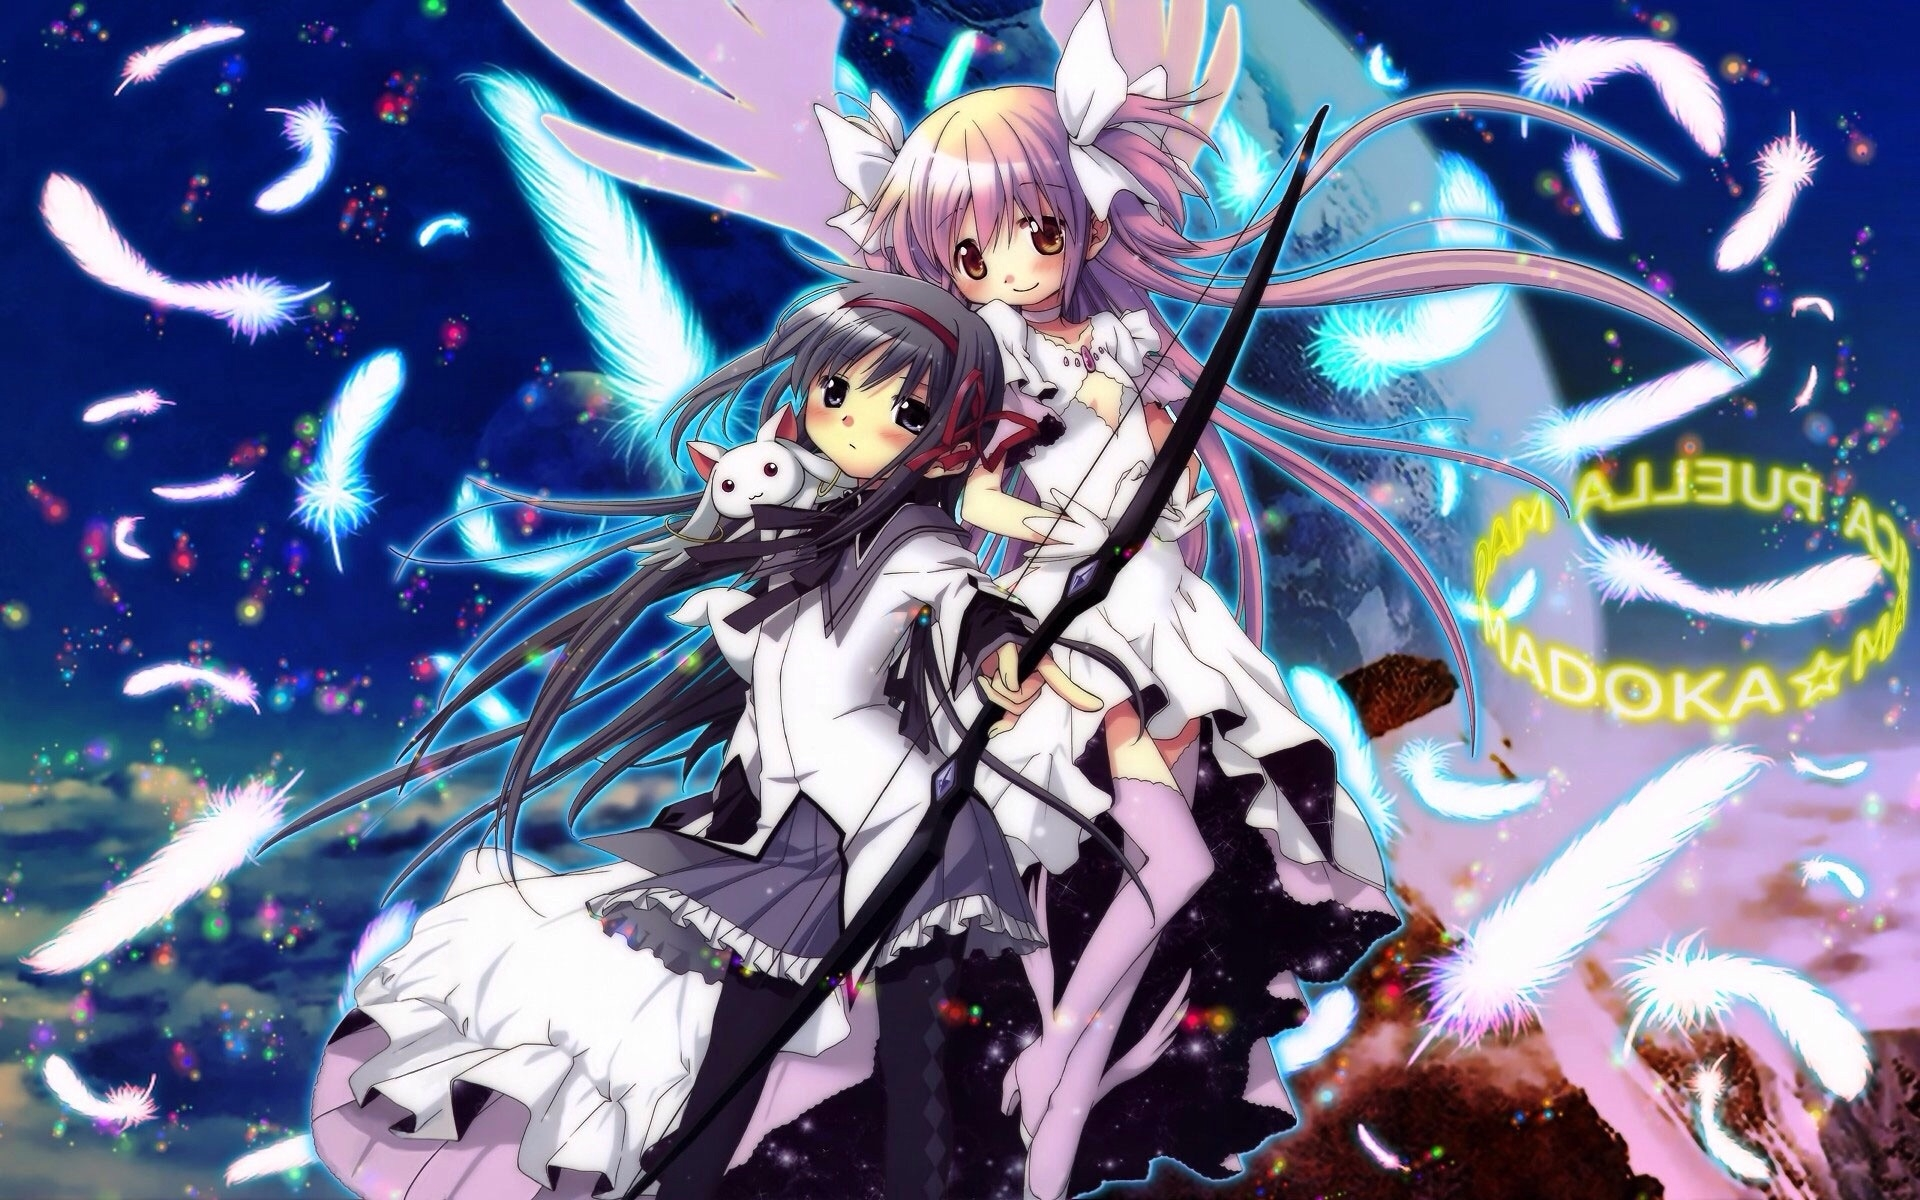 Puella Magi Madoka Magica, Kyubey, Couple, Bow (weapon), Feathers, Pink Hair, White Dress, Girl